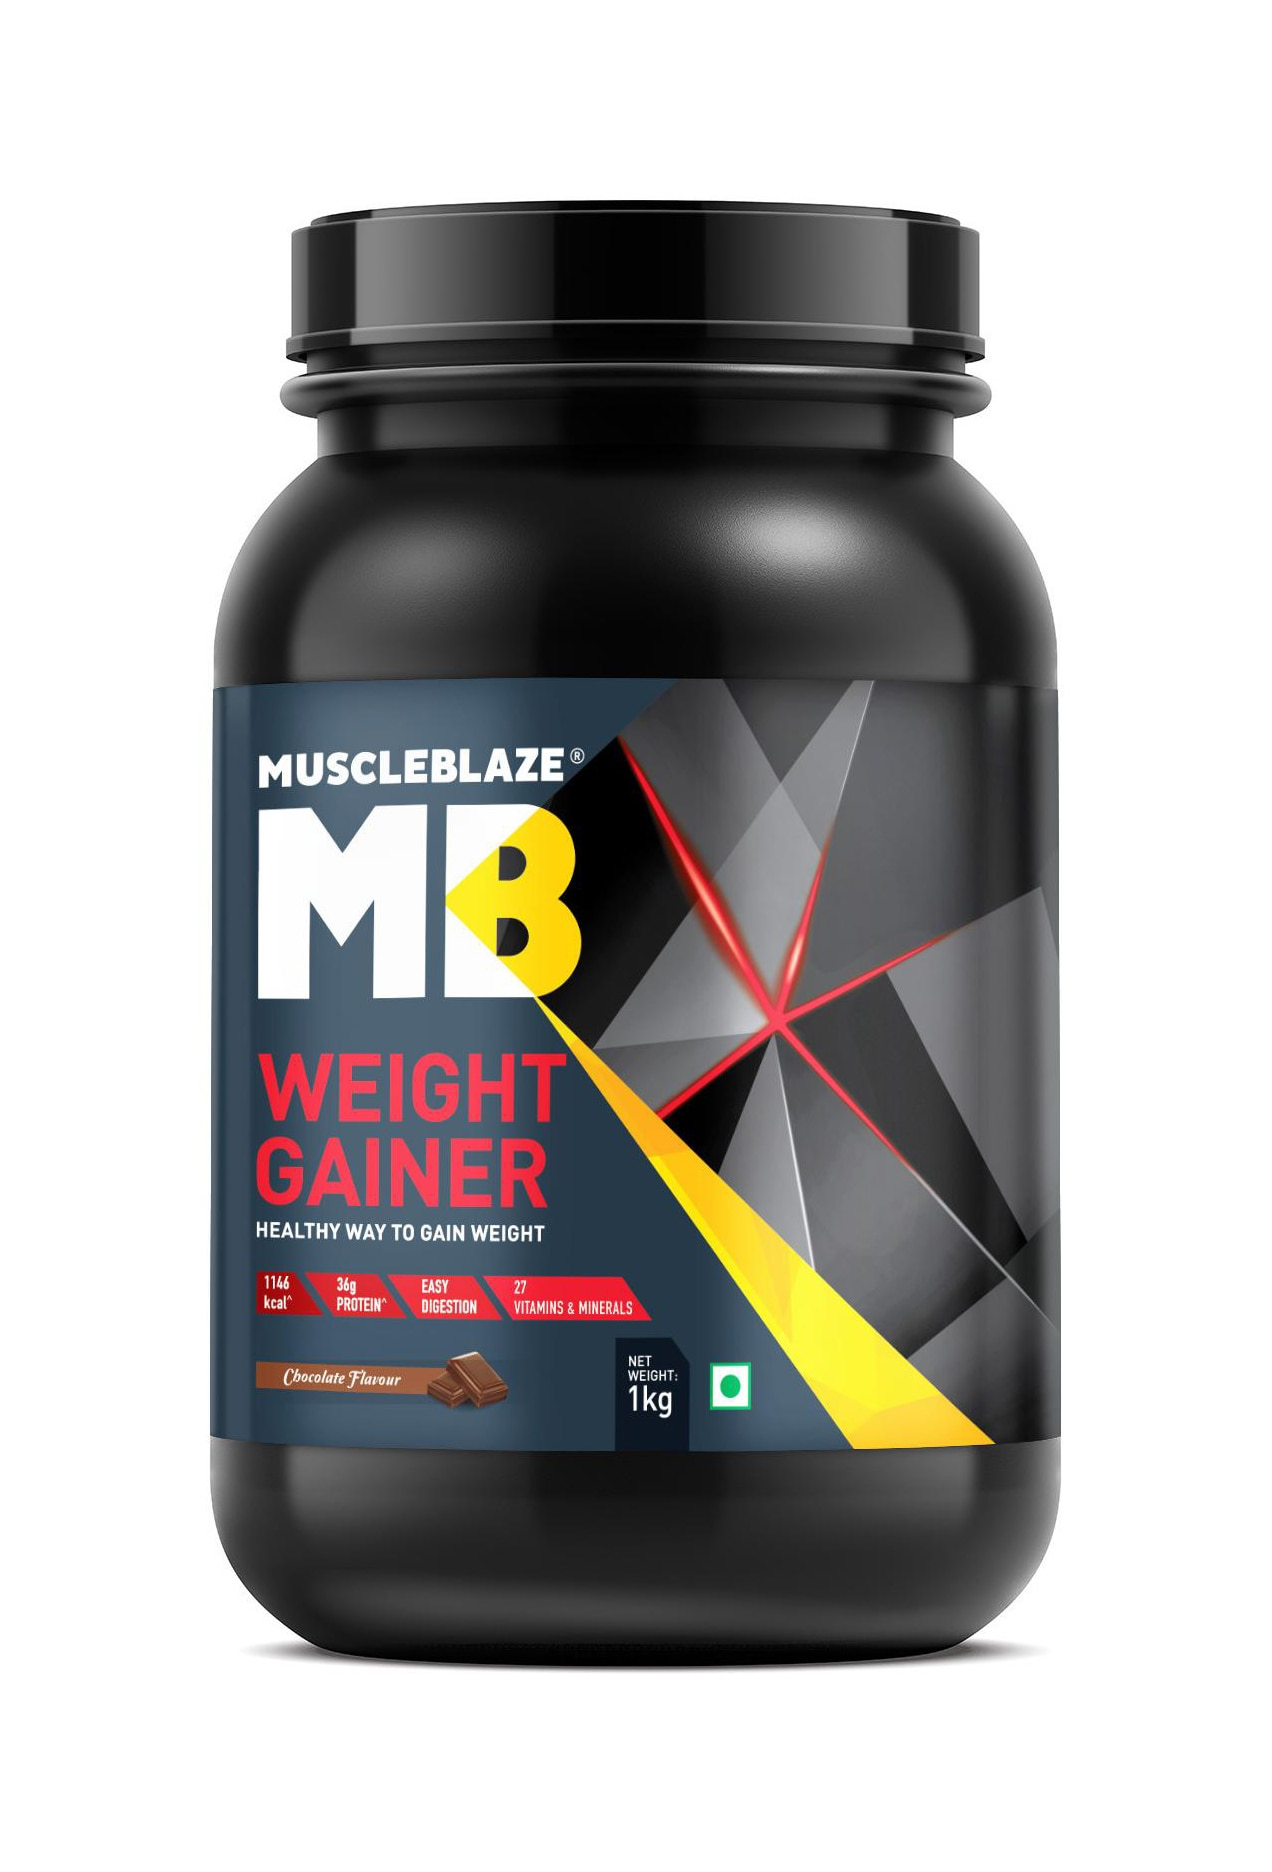 Muscleblaze Weight Gainer 2.2 Lb/1 kg - Chocolate